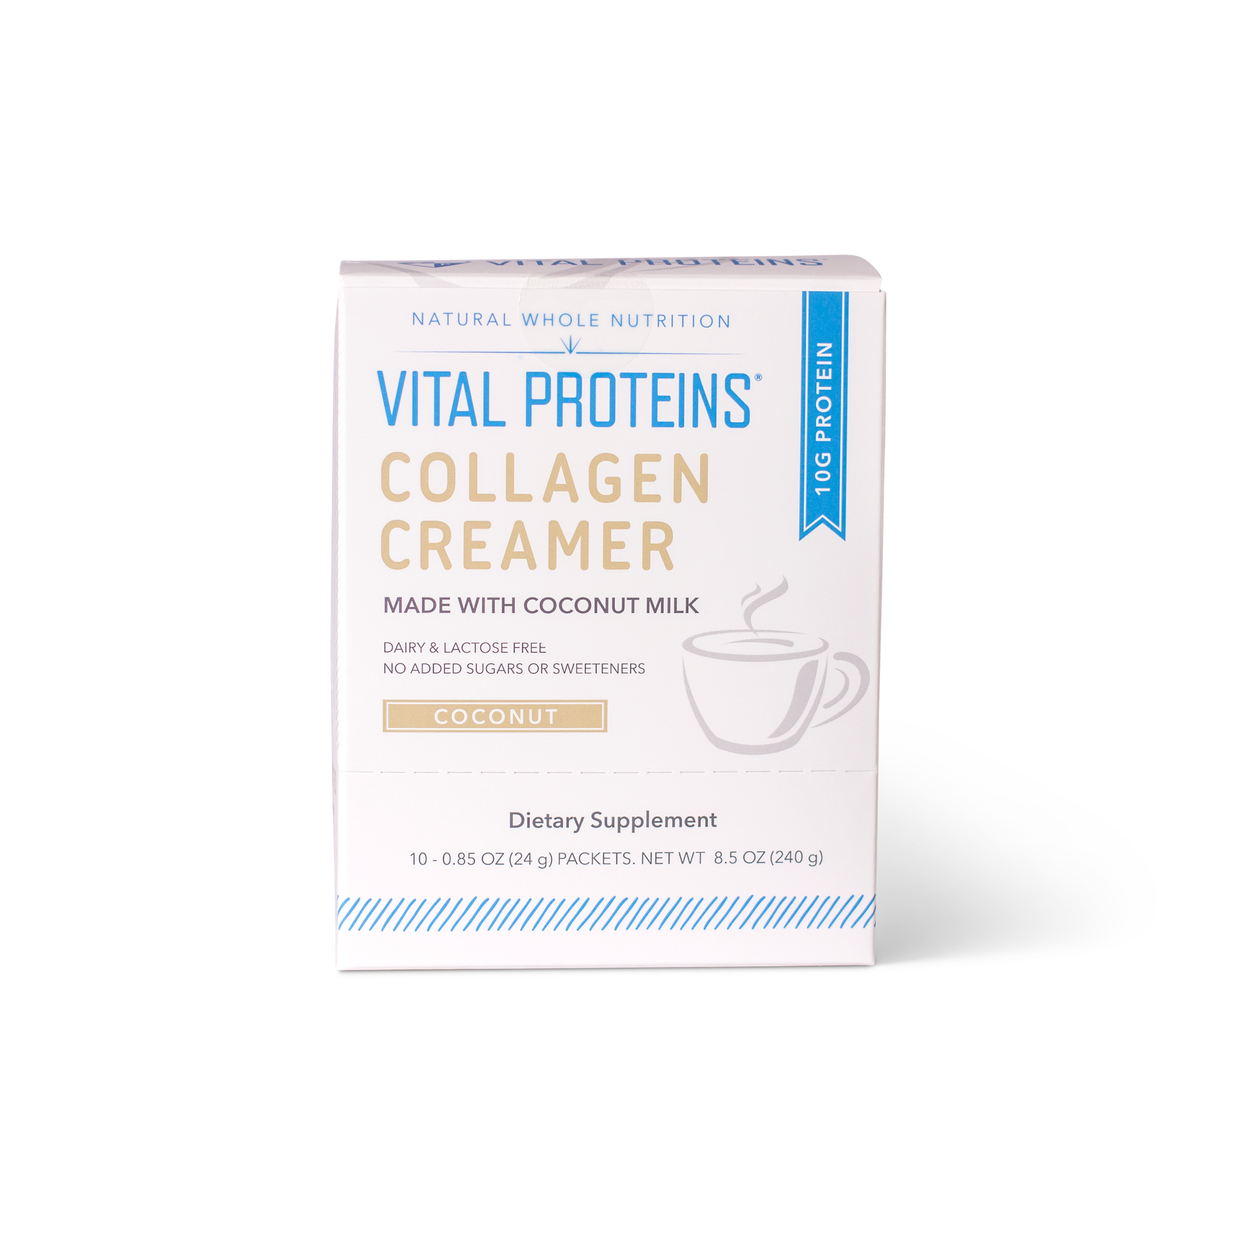 vital proteins coconut creamer 10ct box